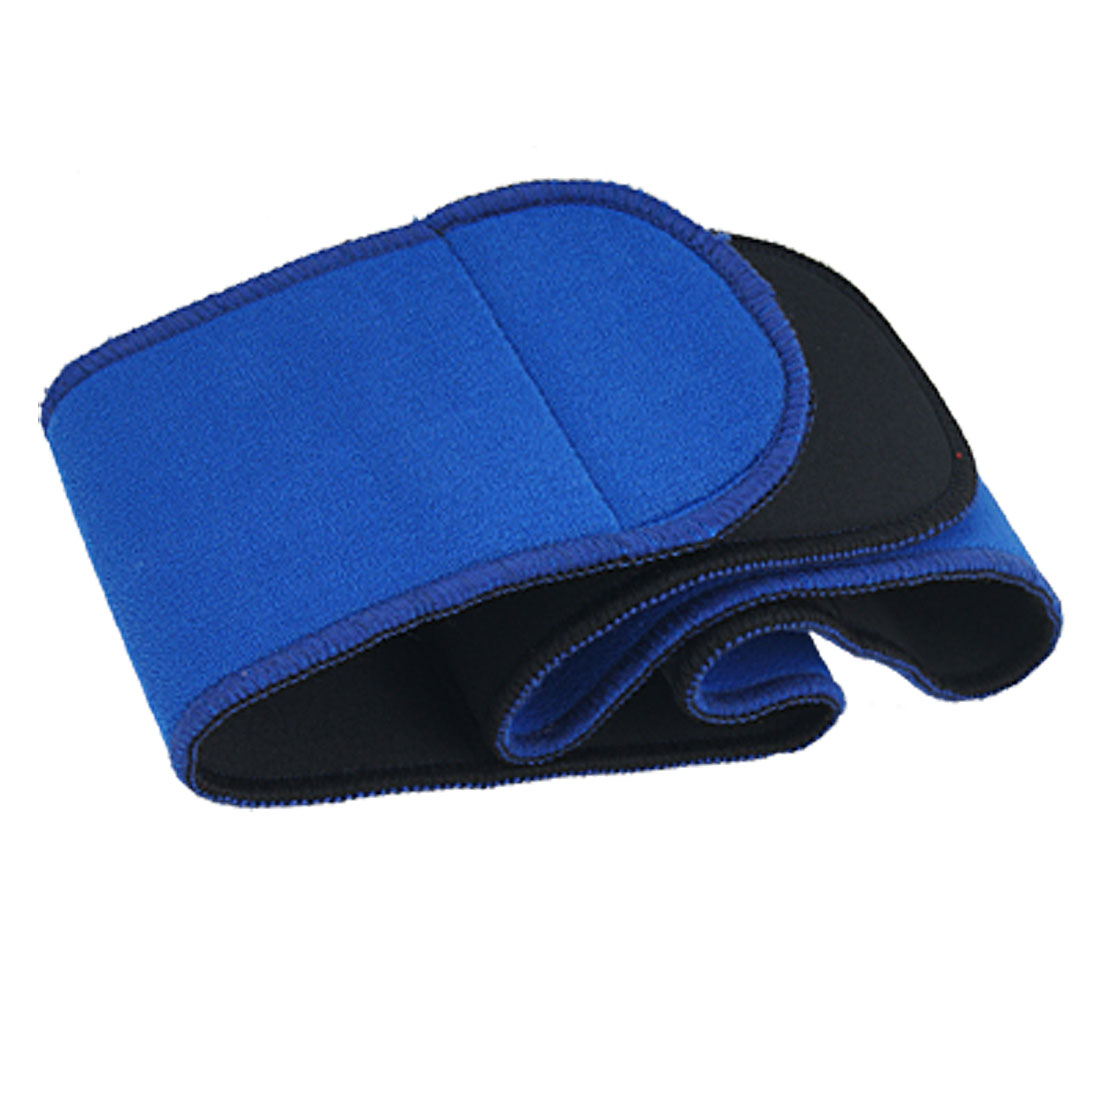 Ladies Sports Black Blue Waist Support Wrapper Band